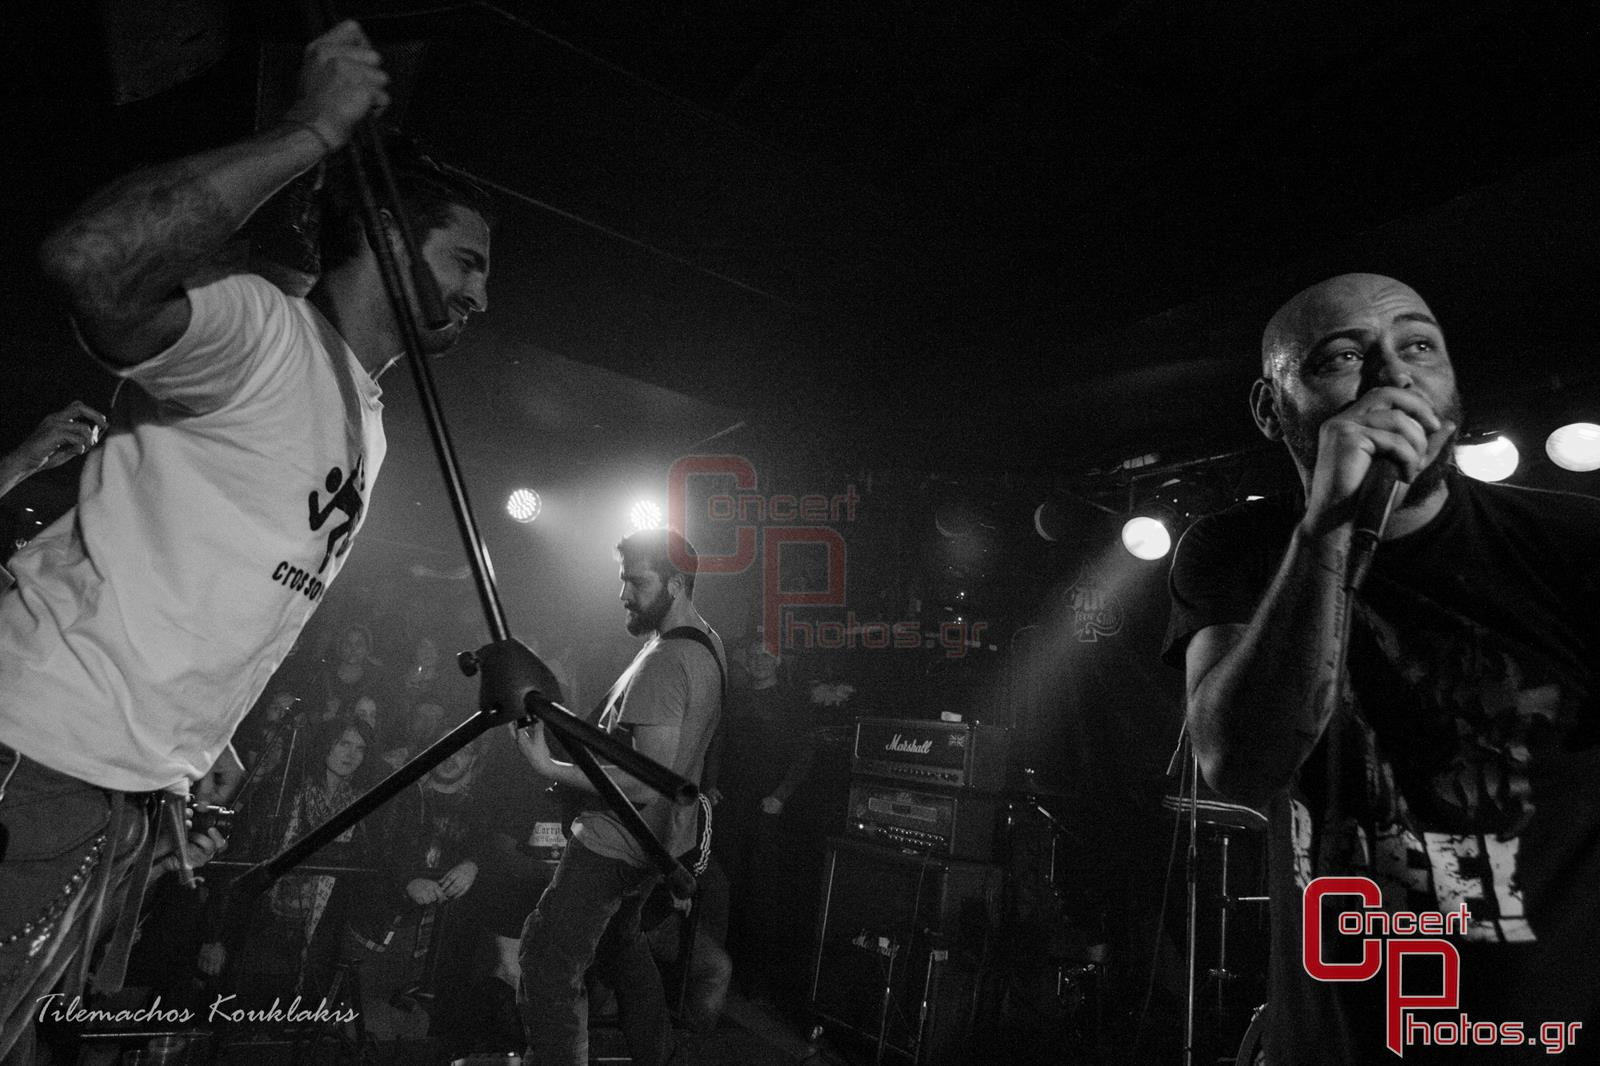 Nightstalker-Nightstalker AN Club photographer:  - concertphotos_-14